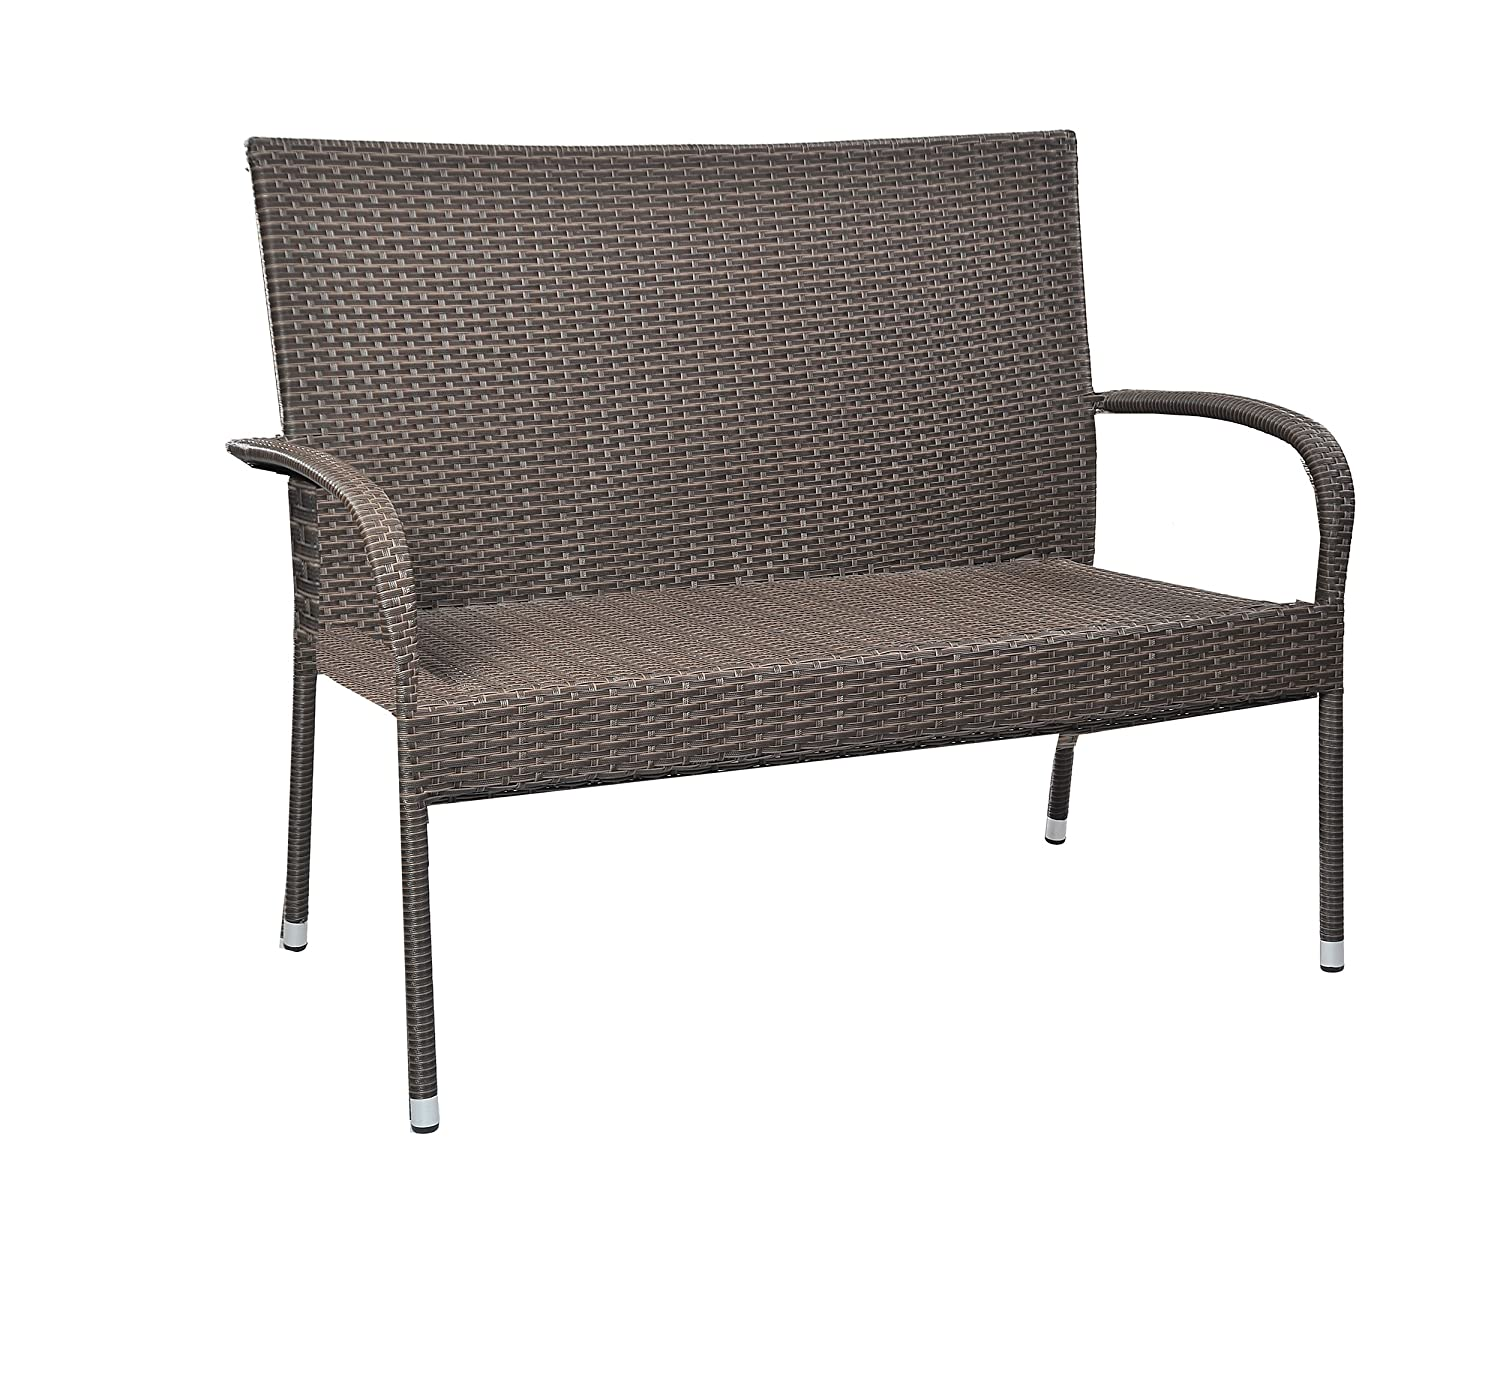 Patioflare PF-BB218MO Resin Wicker Bench